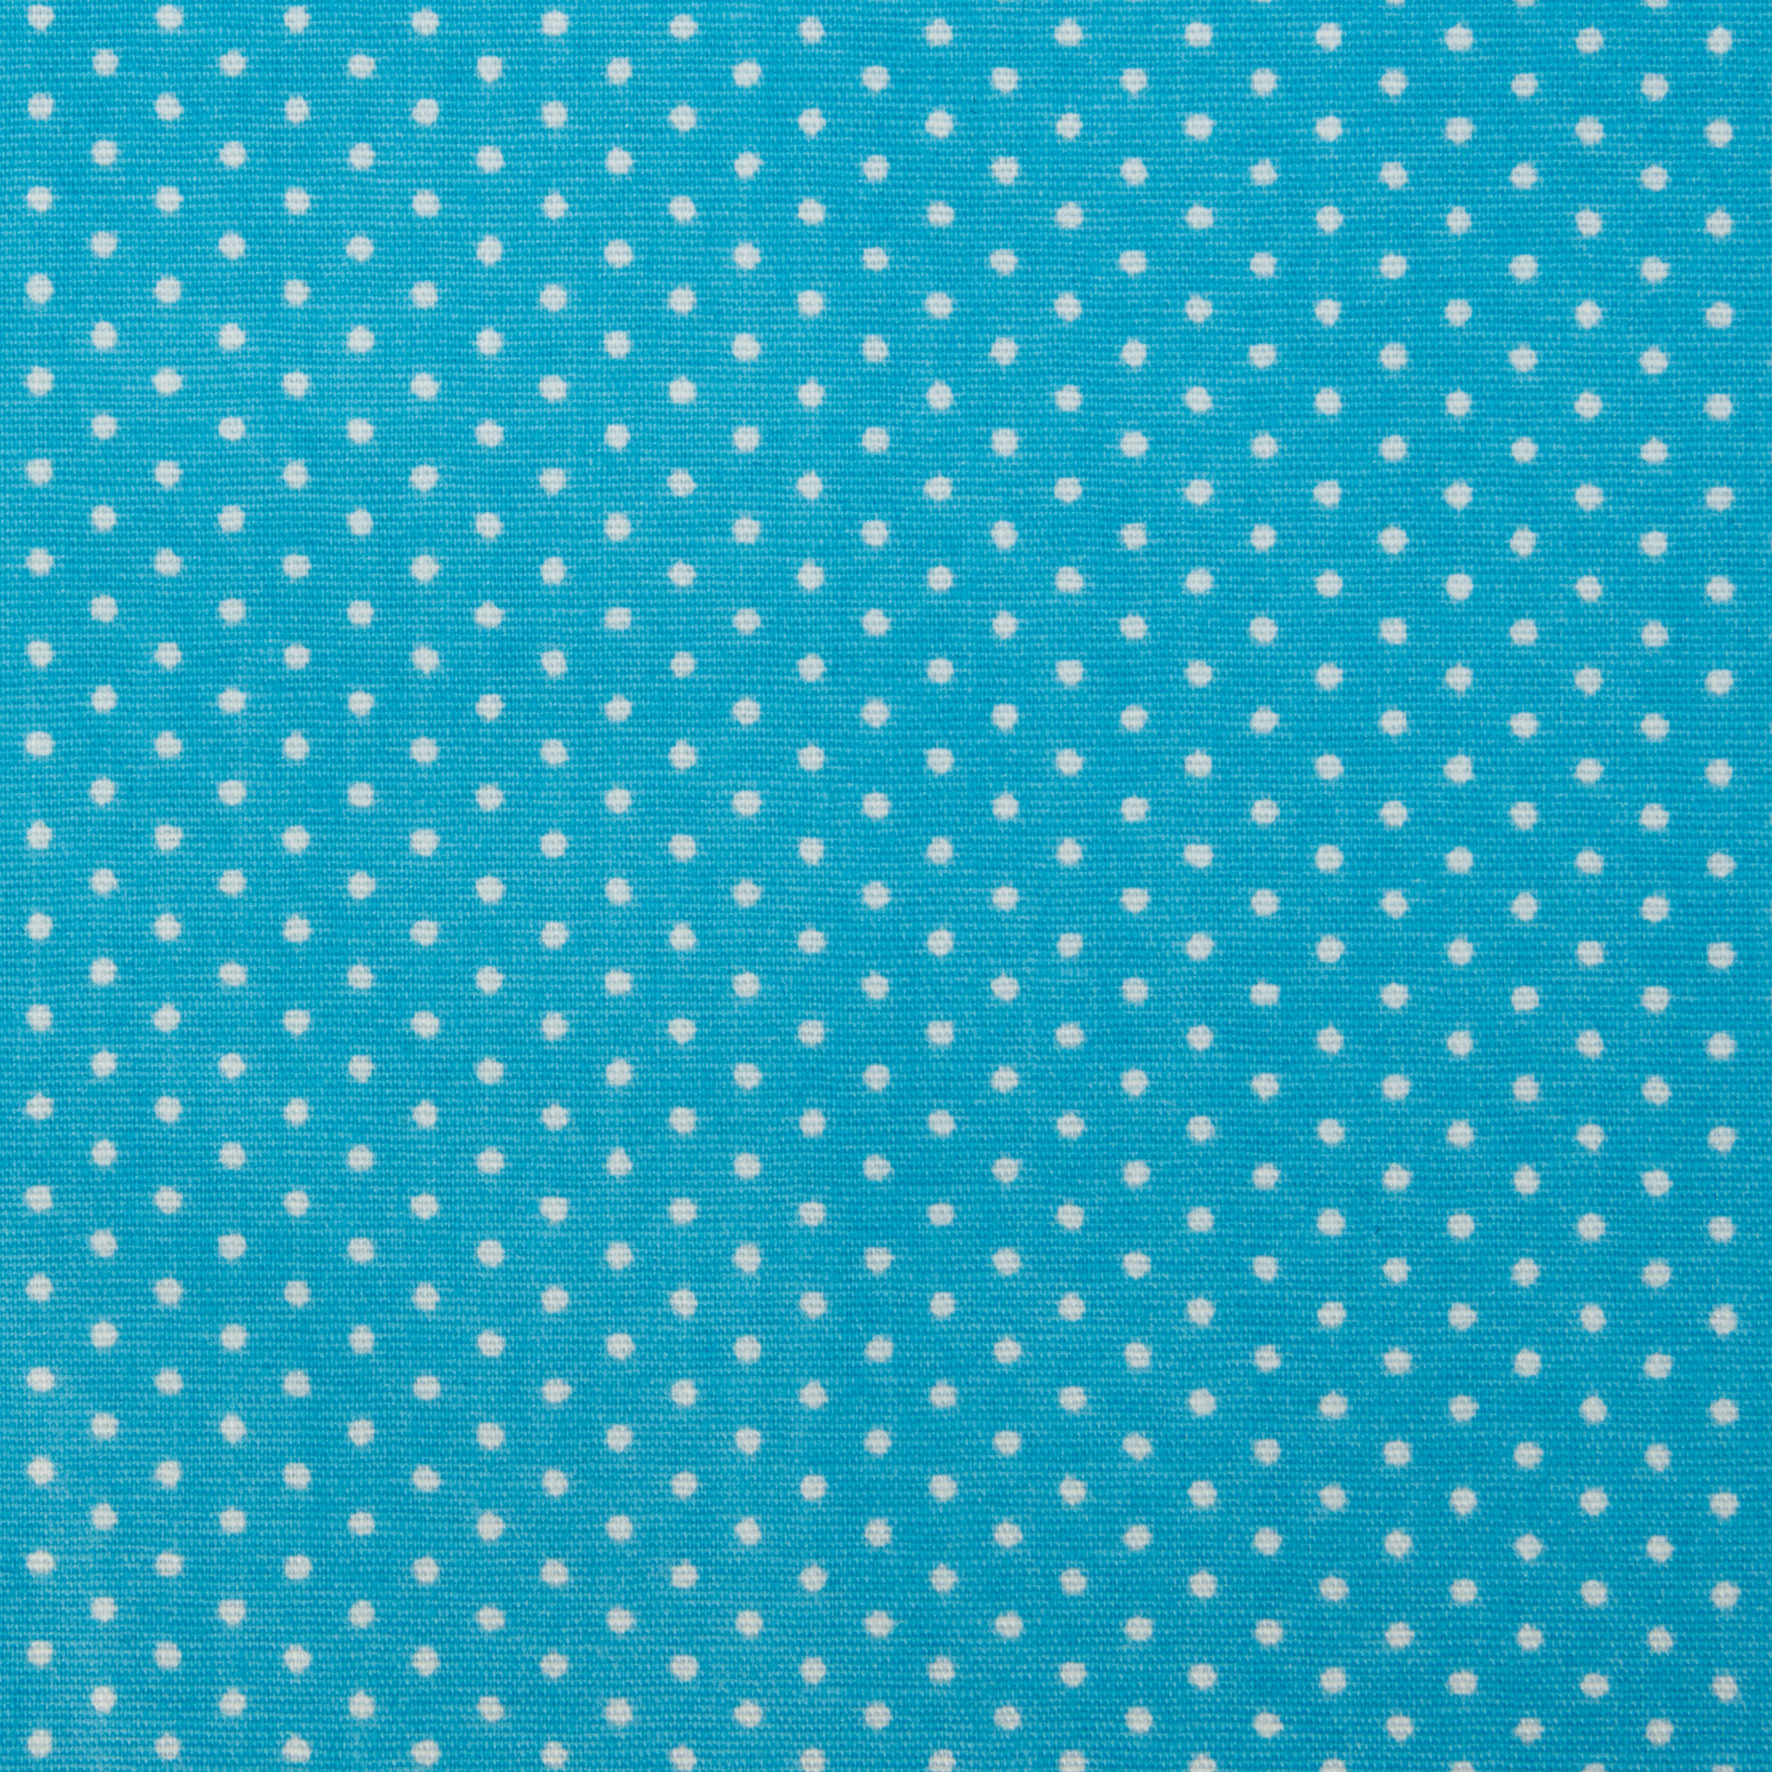 Buy tailor made shirts online - Mauritius (CLEARANCE) - Sky Blue with Polka Dots